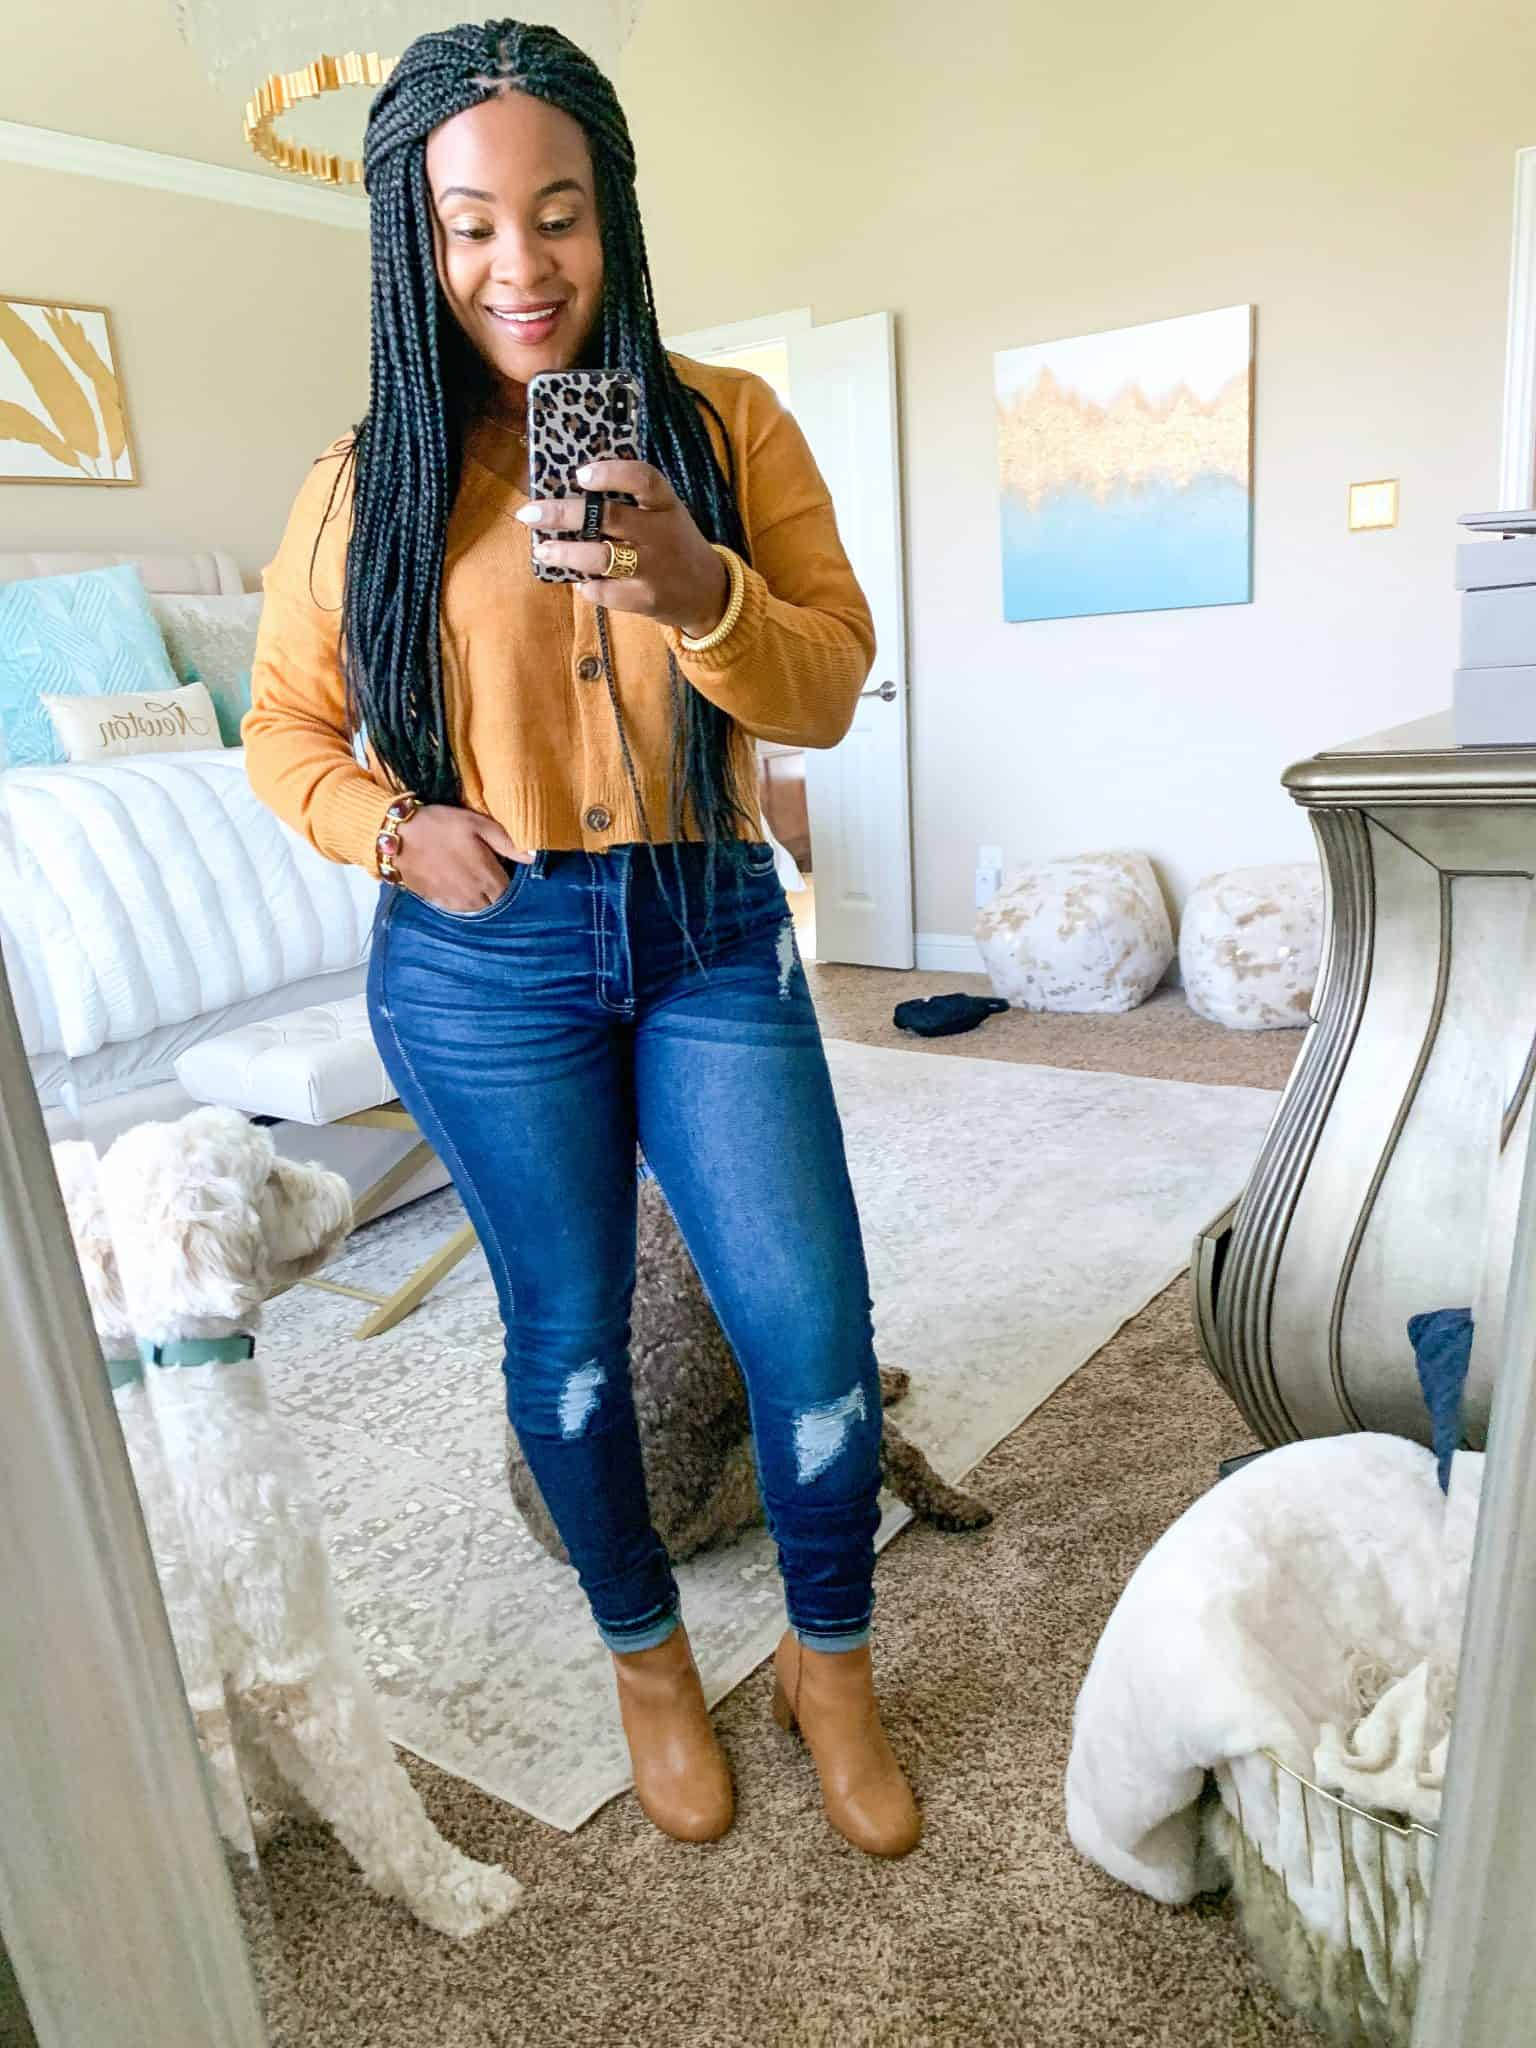 Red Dress Boutique Fall Collection 2 Try On by popular Dallas fashion blog, Glamorous Versatility: image of a woman wearing a Red Dress Boutique yellow sweater and Have We Met Dark Wash Distressed Curvy Skinny Jeans.